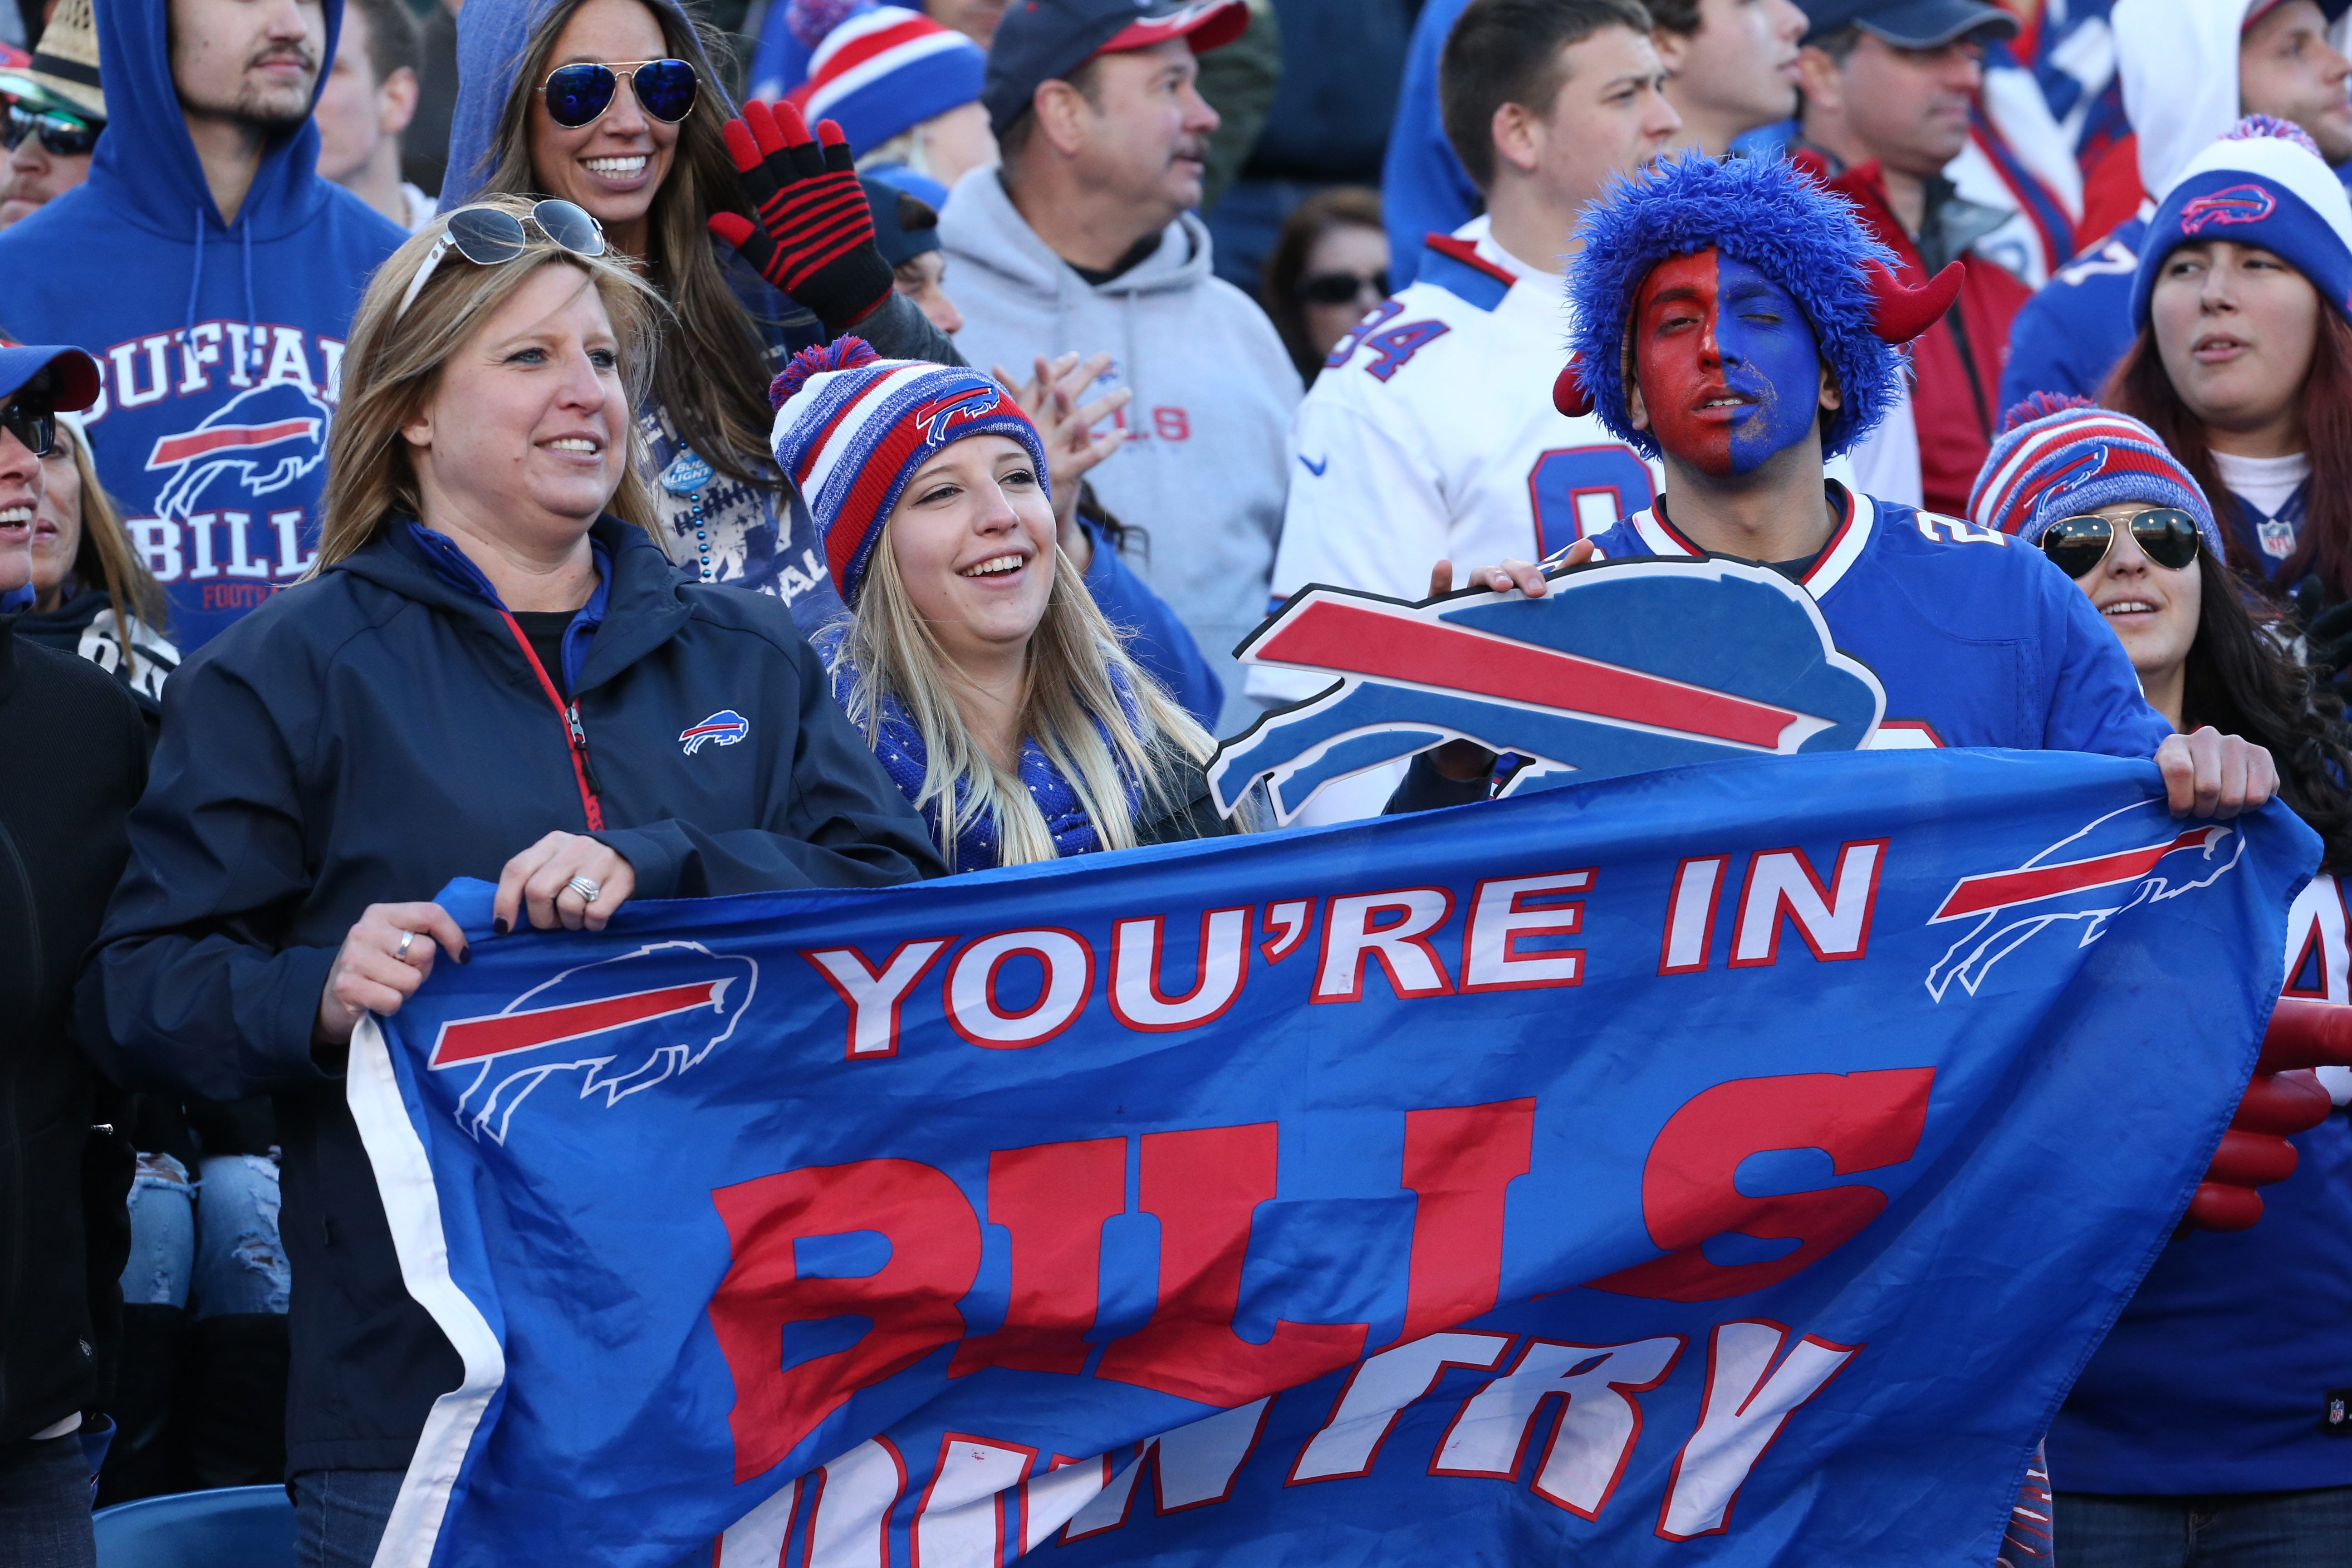 Bills fans are hoping for a winning season and some playoff action this year.  (James P. McCoy/ News file photo)